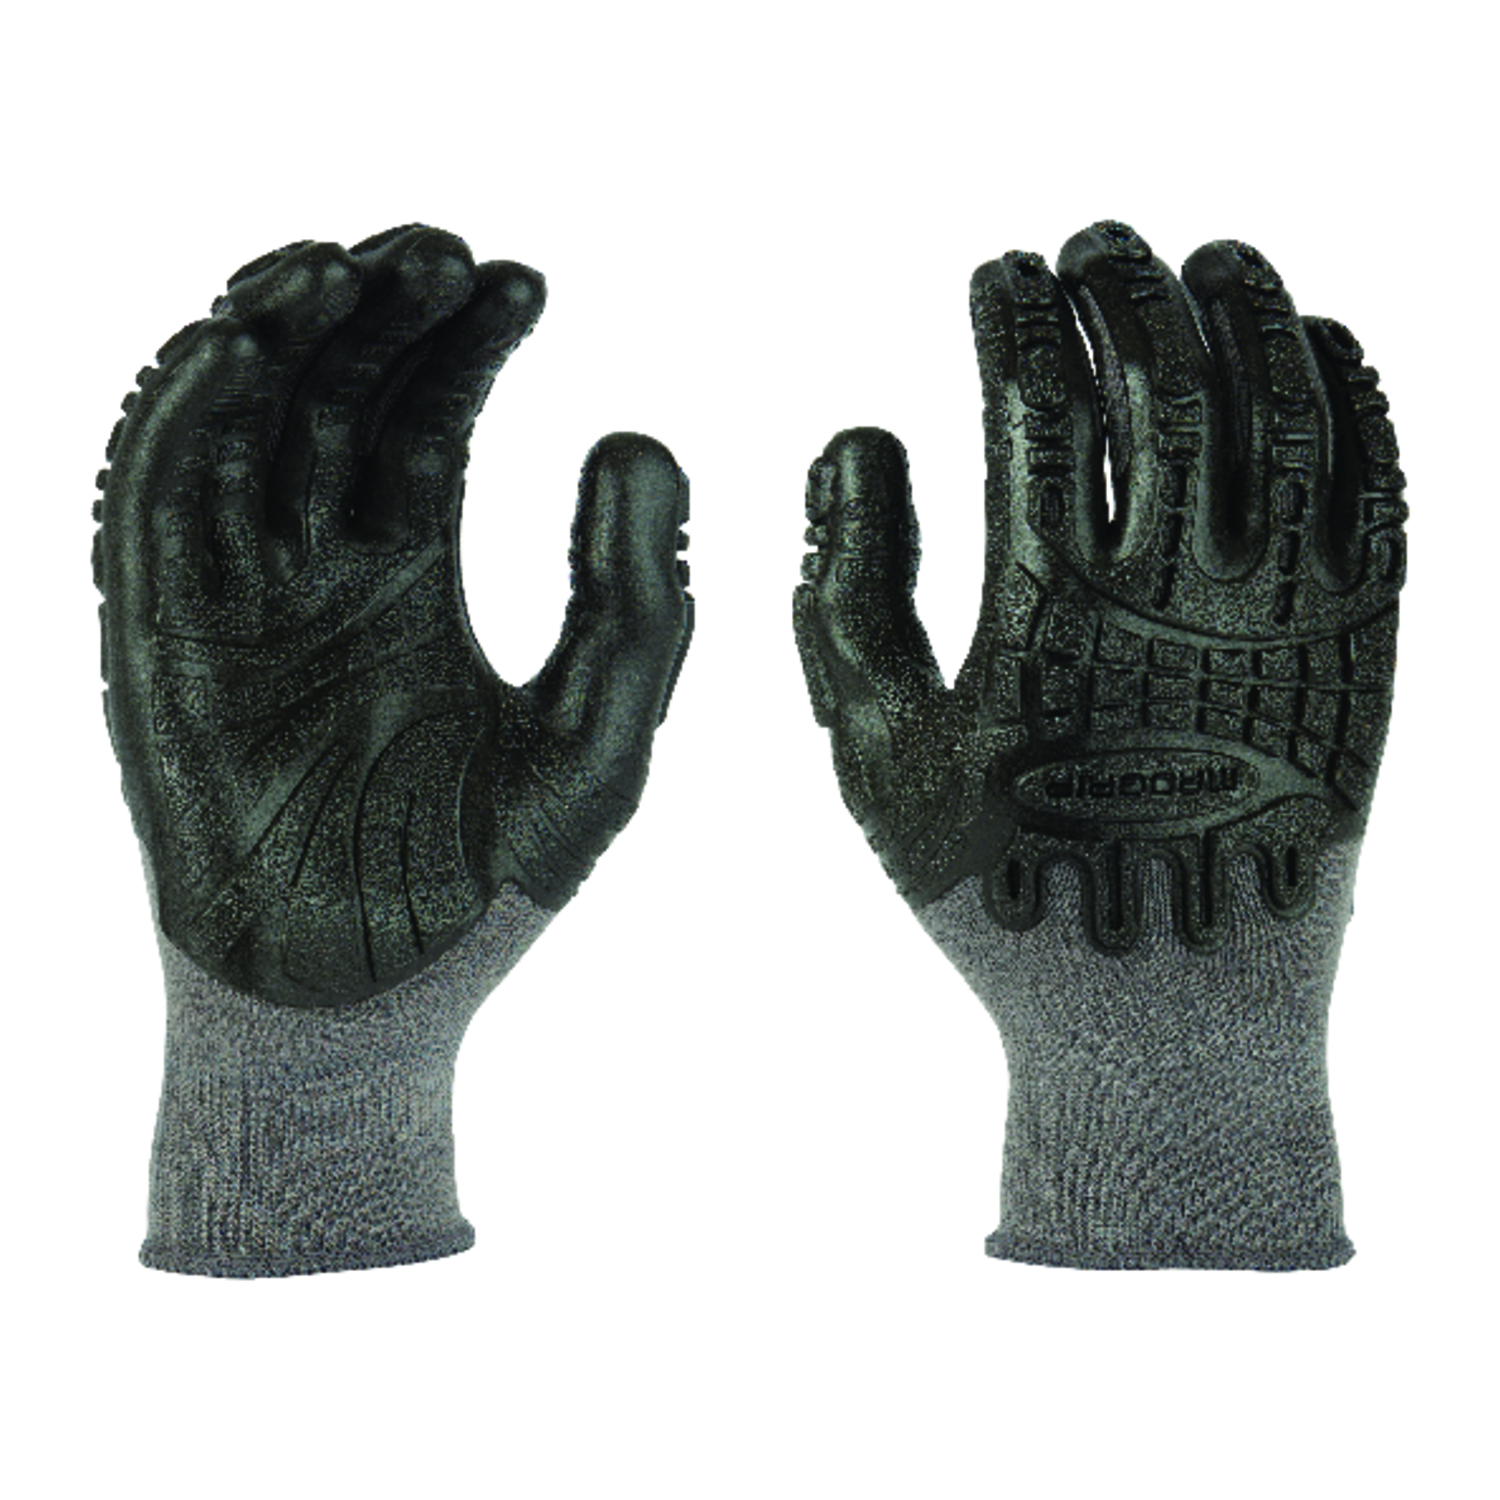 Madgrip  Thunderdome  Universal  Rubber  Coated  Work Gloves  Black  Large